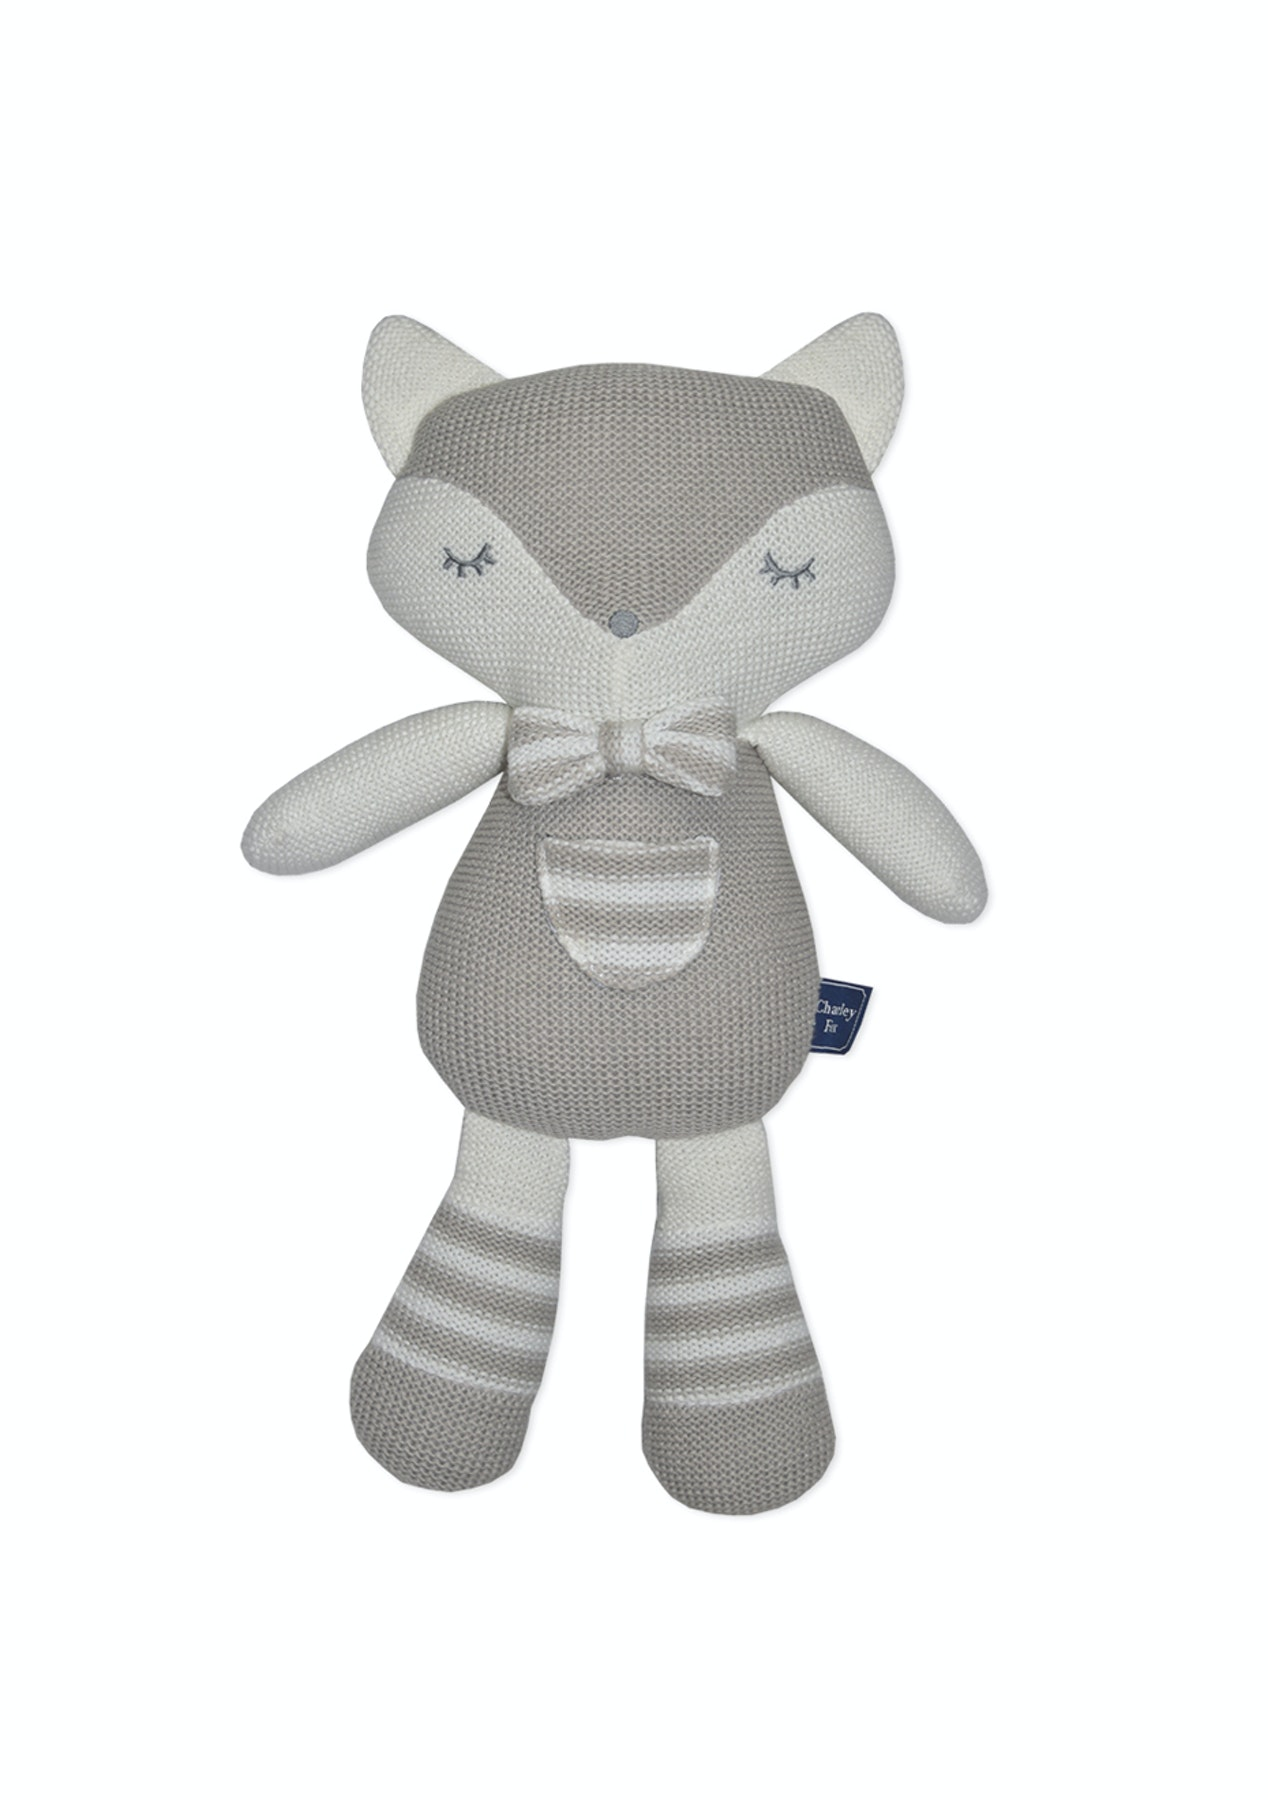 72690c5d5 Living Textiles - Charley The Fox - Kids   Baby Outlet - Onceit